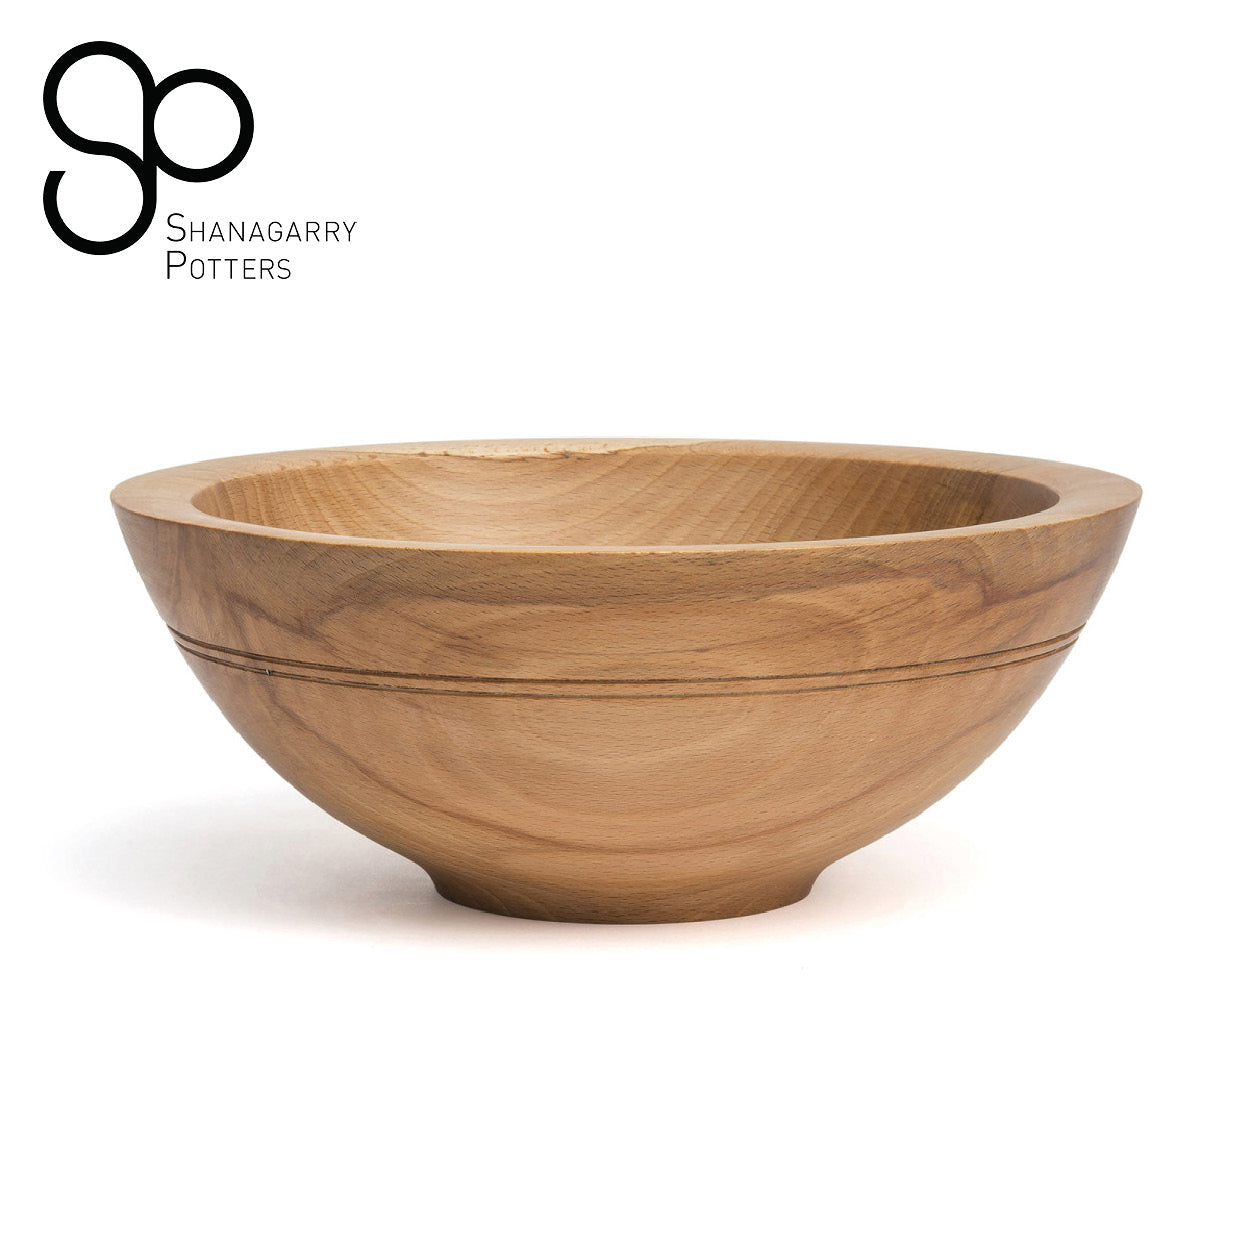 Liam O'Neill - Large Flared Bowl